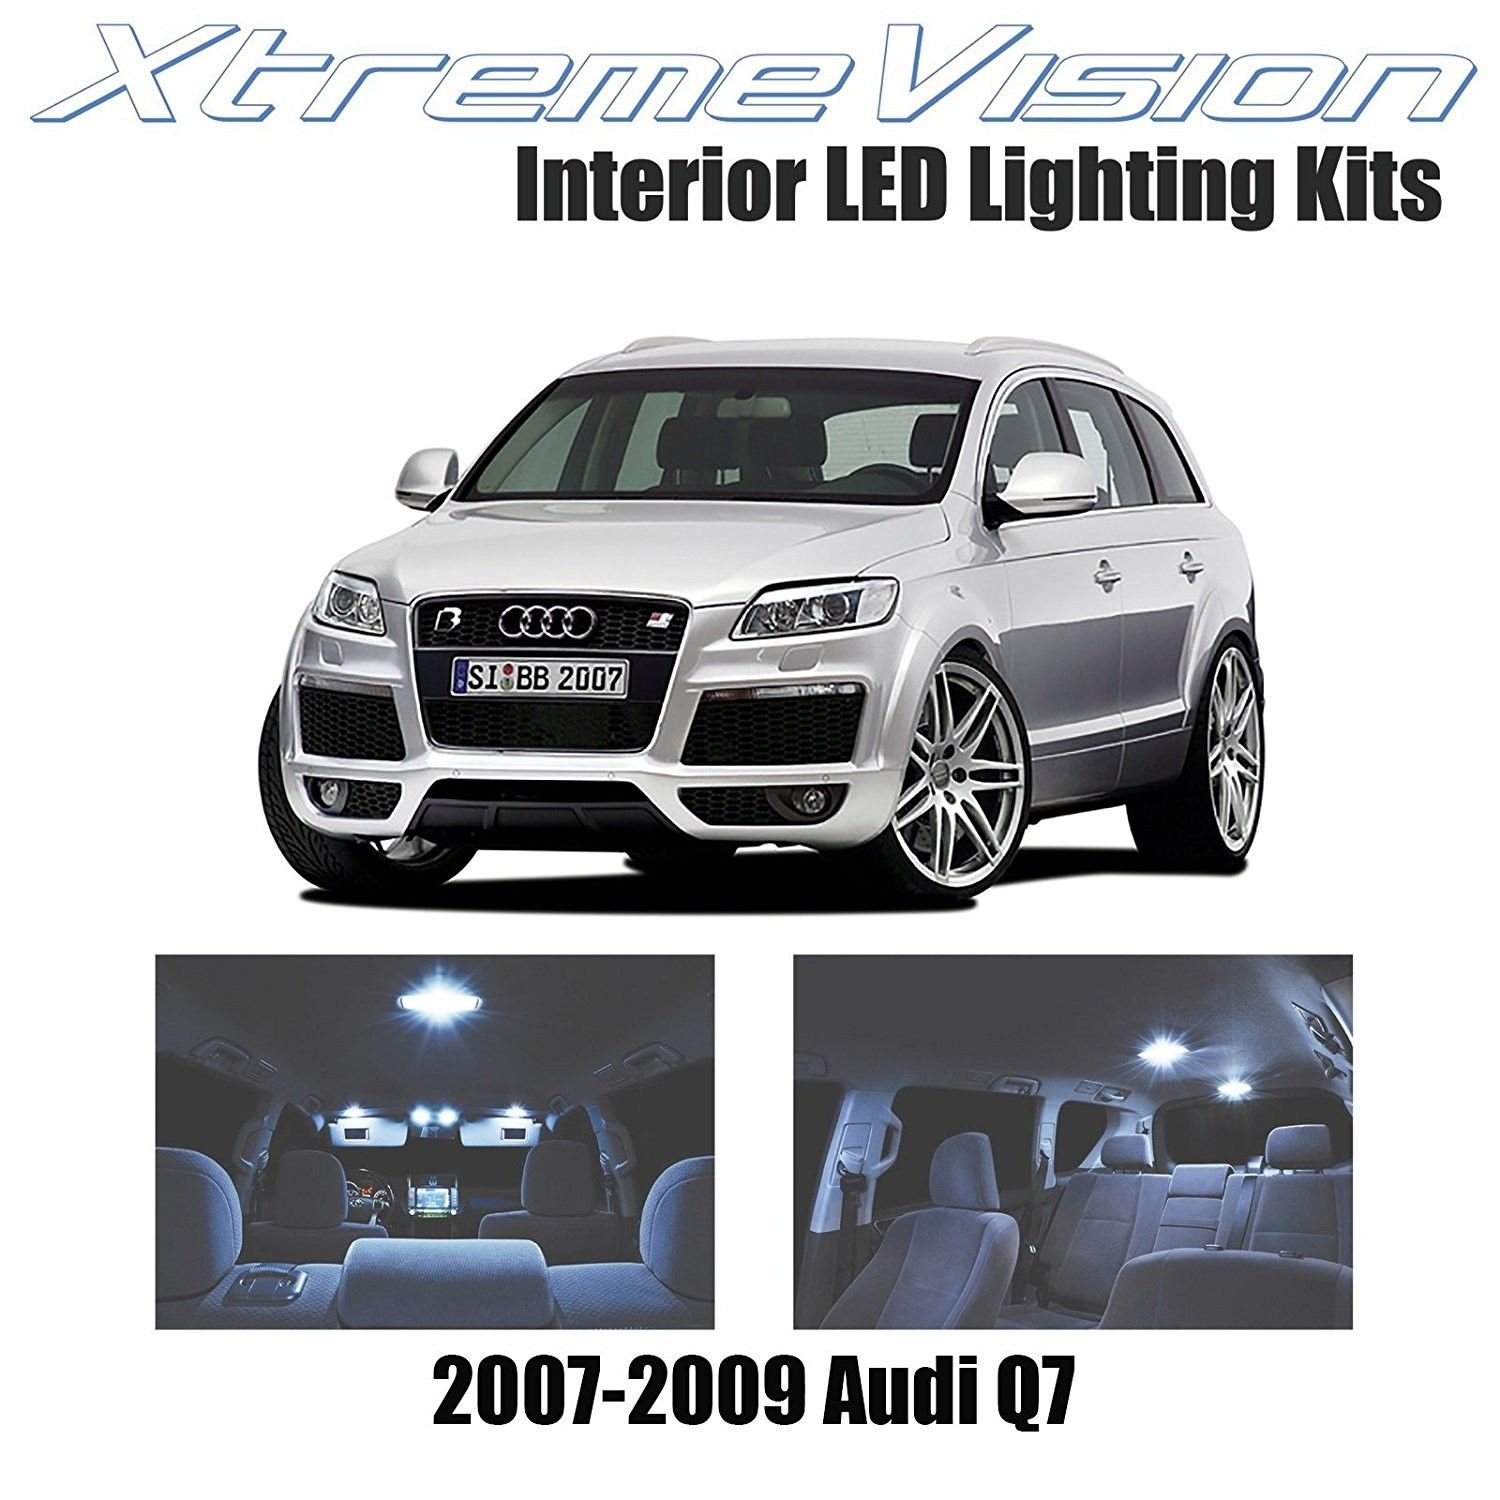 Amazing XtremeVision LED For Audi Q7 2007-2009 (16 Pieces